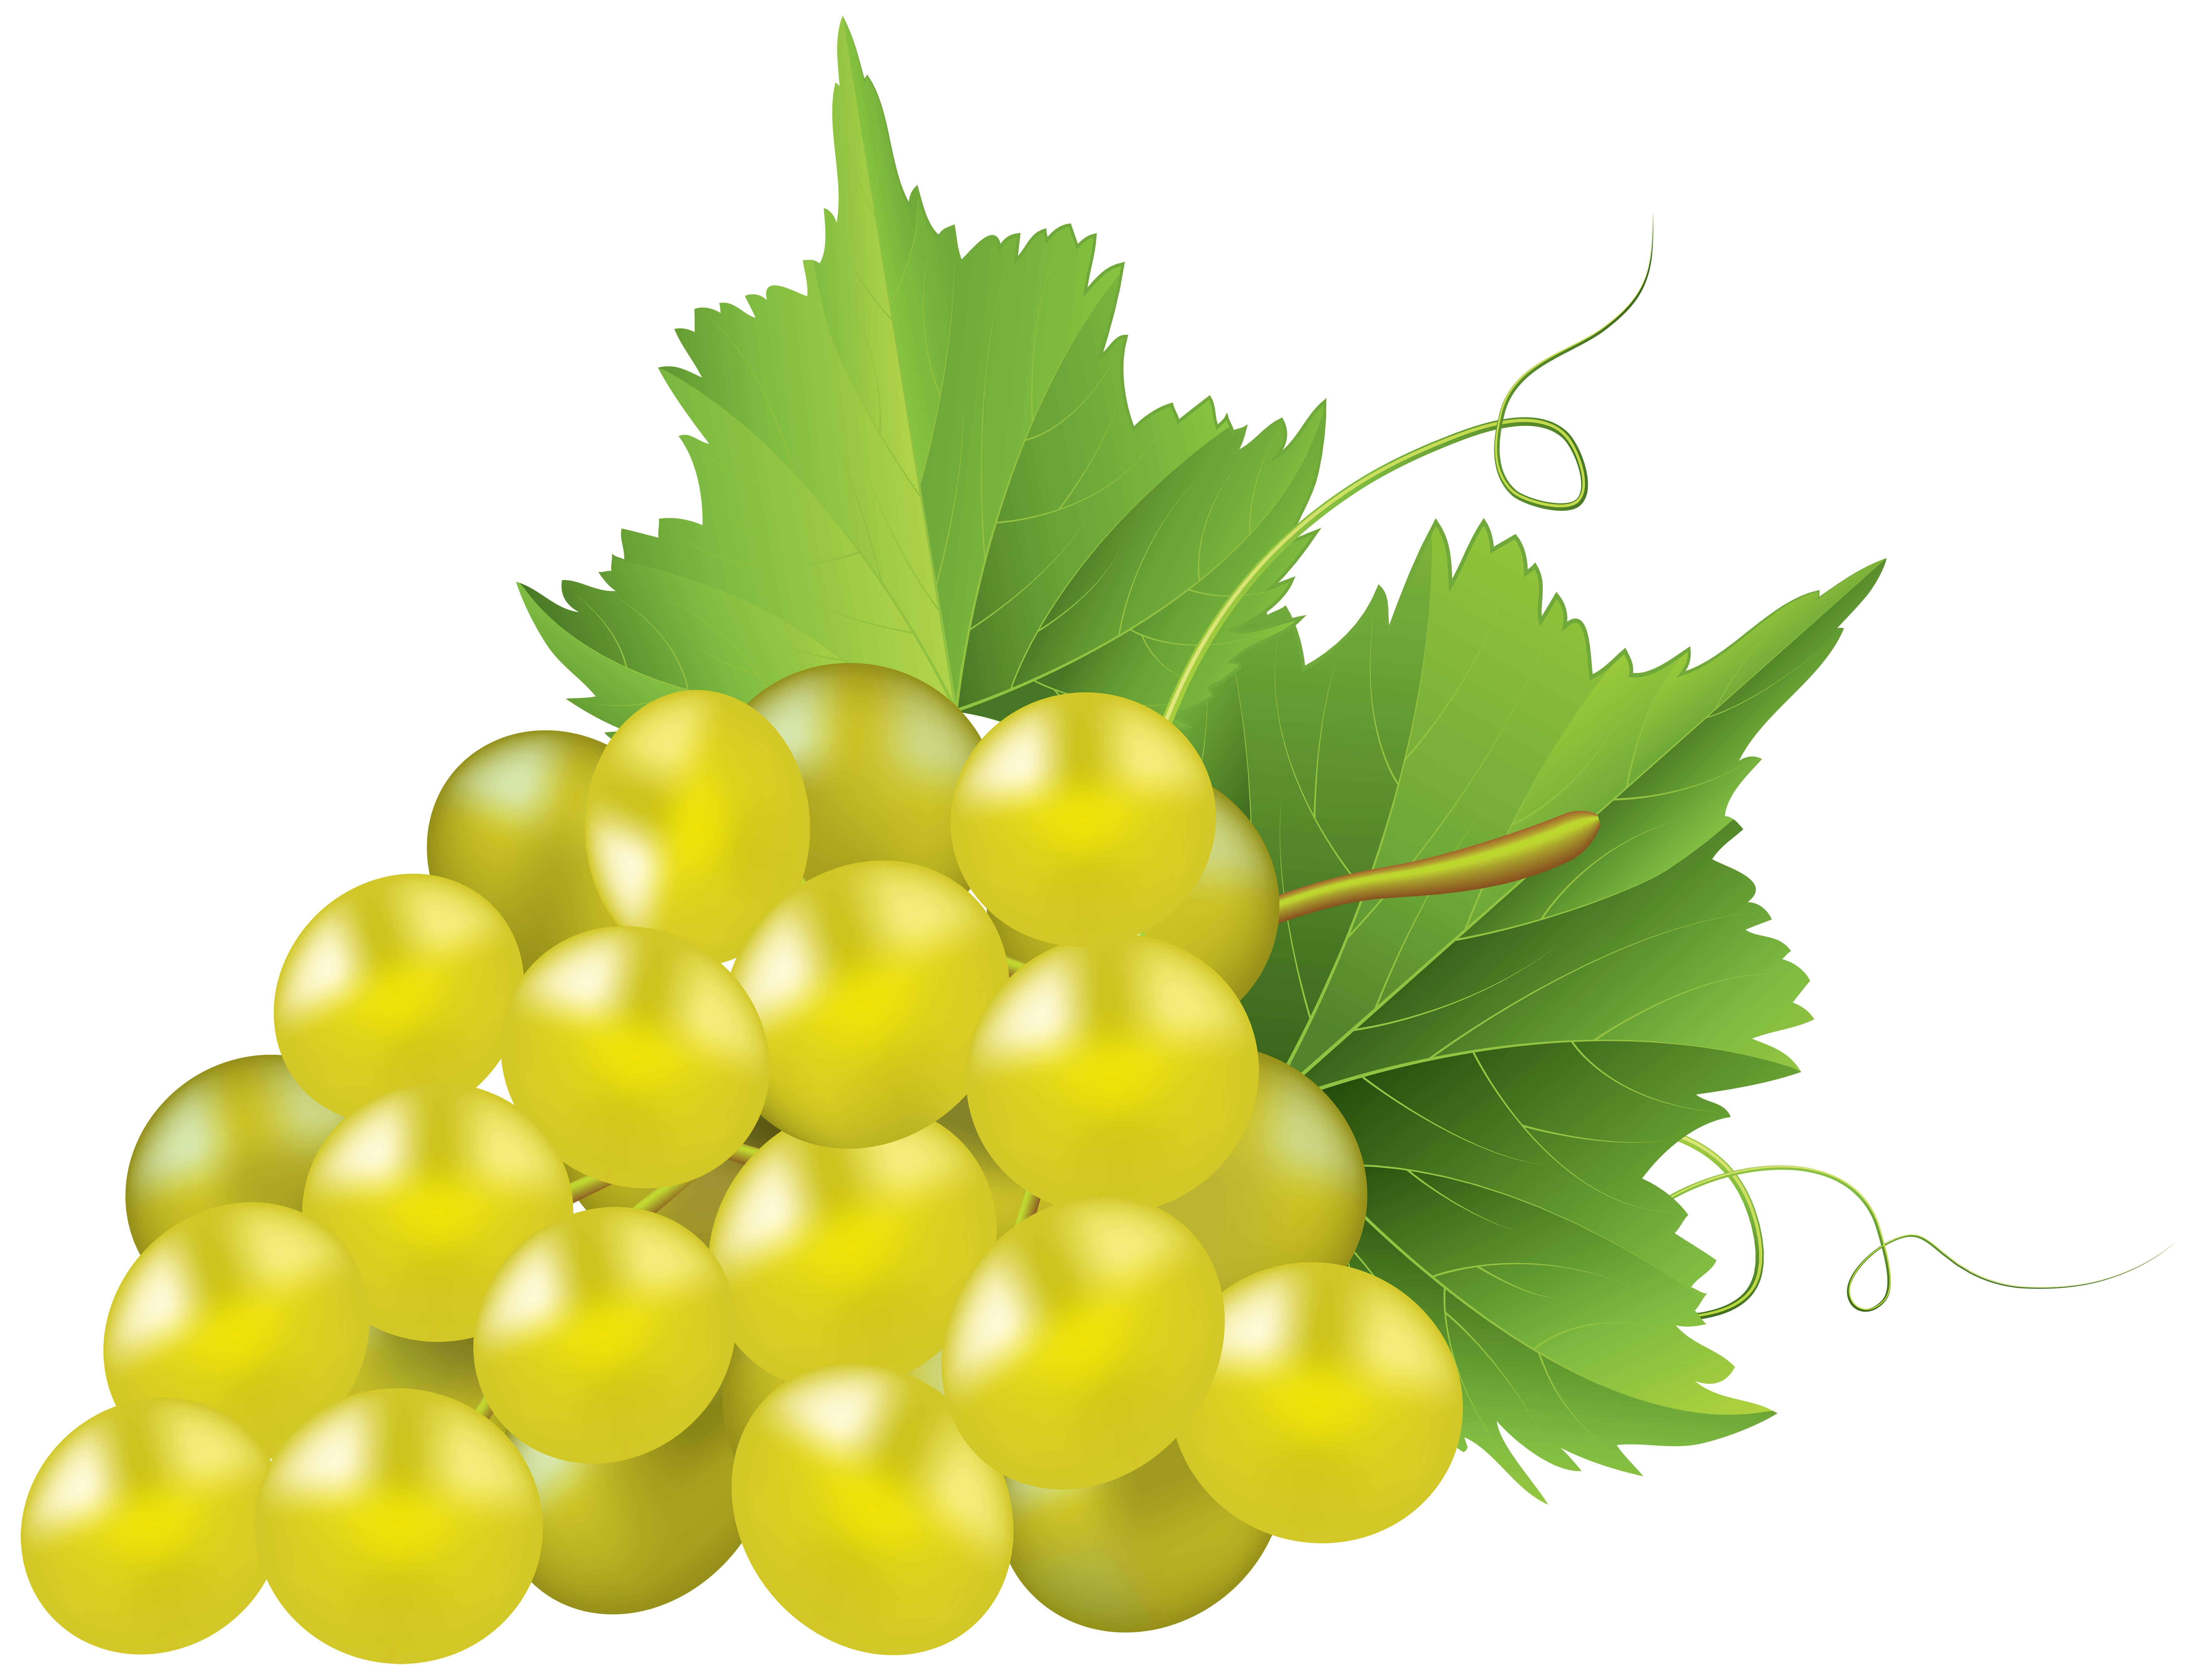 White grapes clipart clip free library White Grape Transparent PNG Clip Art Image | Gallery ... clip free library